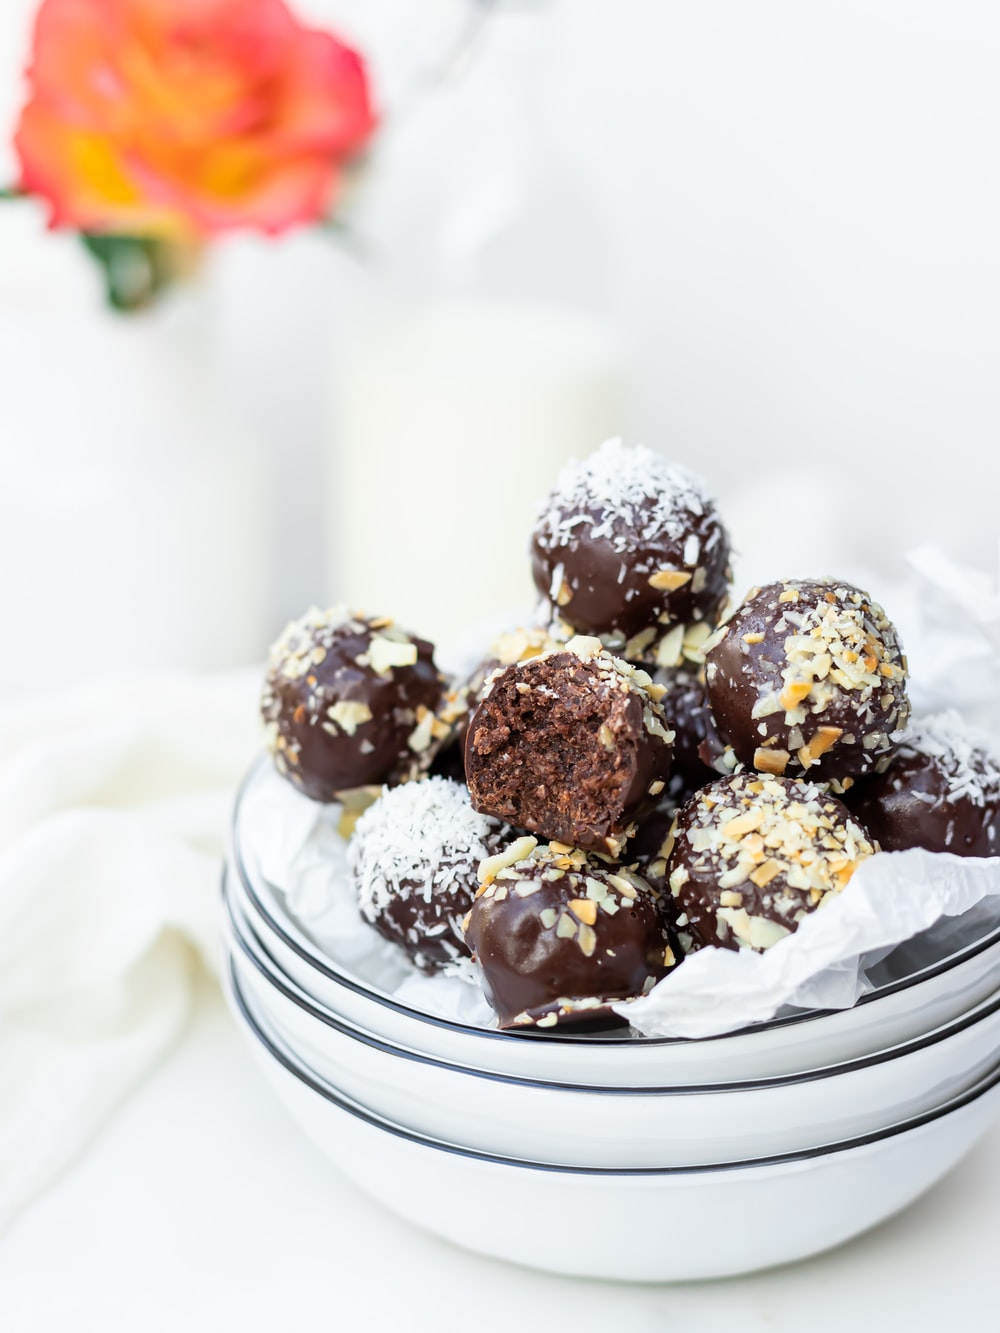 chocolate truffles made with wholesale chocolate chips on a white ceramic plate